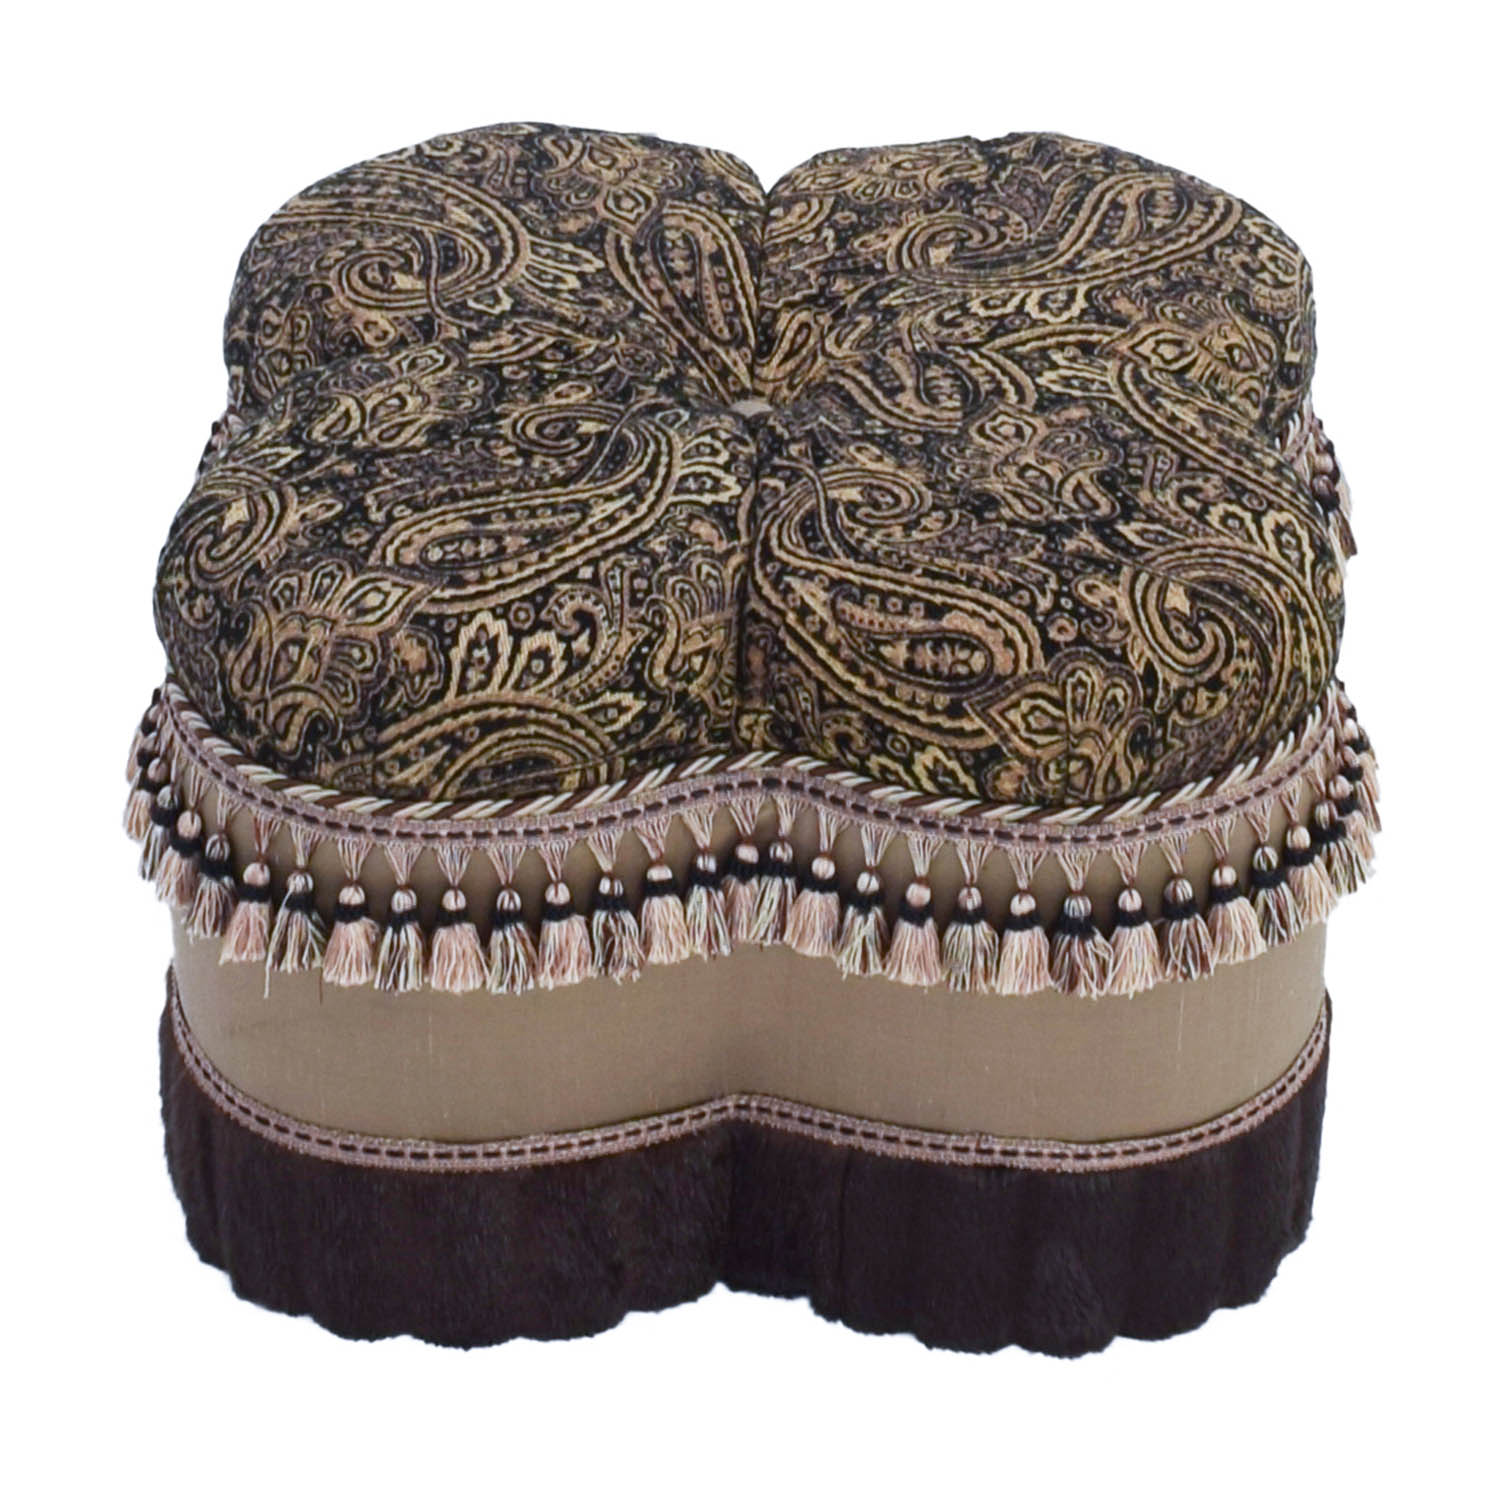 Bombay Co Bombay Co Paisley Faux Fur Ottoman coupon